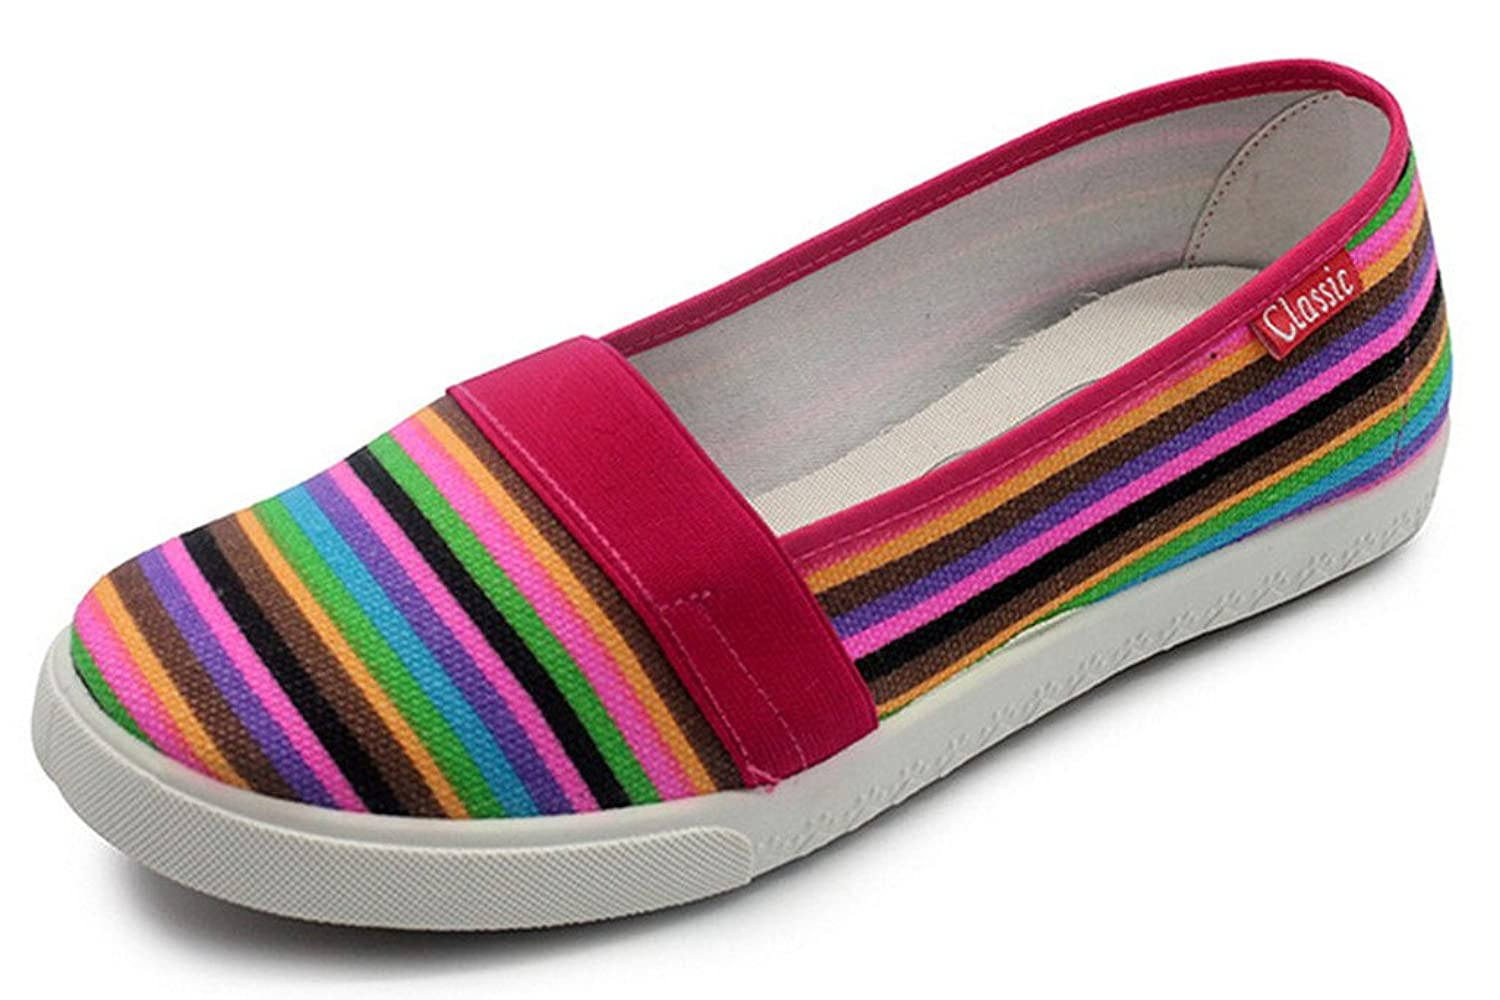 Maybest Women Loafers Soft Rainbow Stripes Slip On Flats Summer Style Canvas Shoes